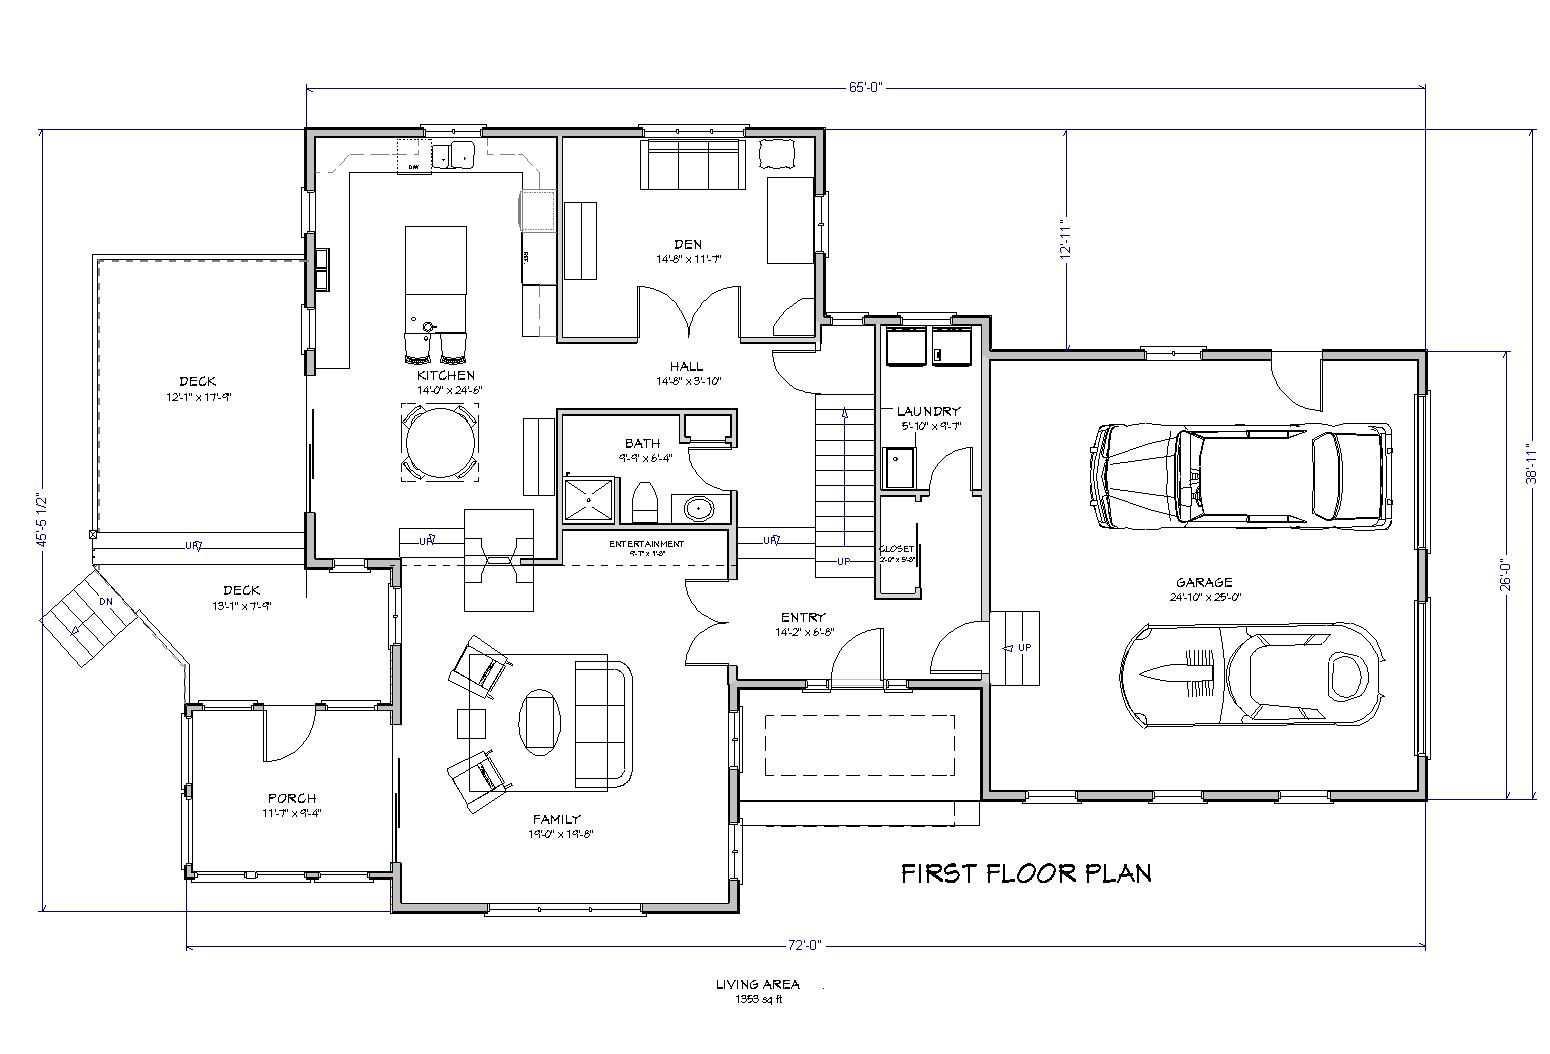 3 bedroom house plans ideas for Lake floor plans